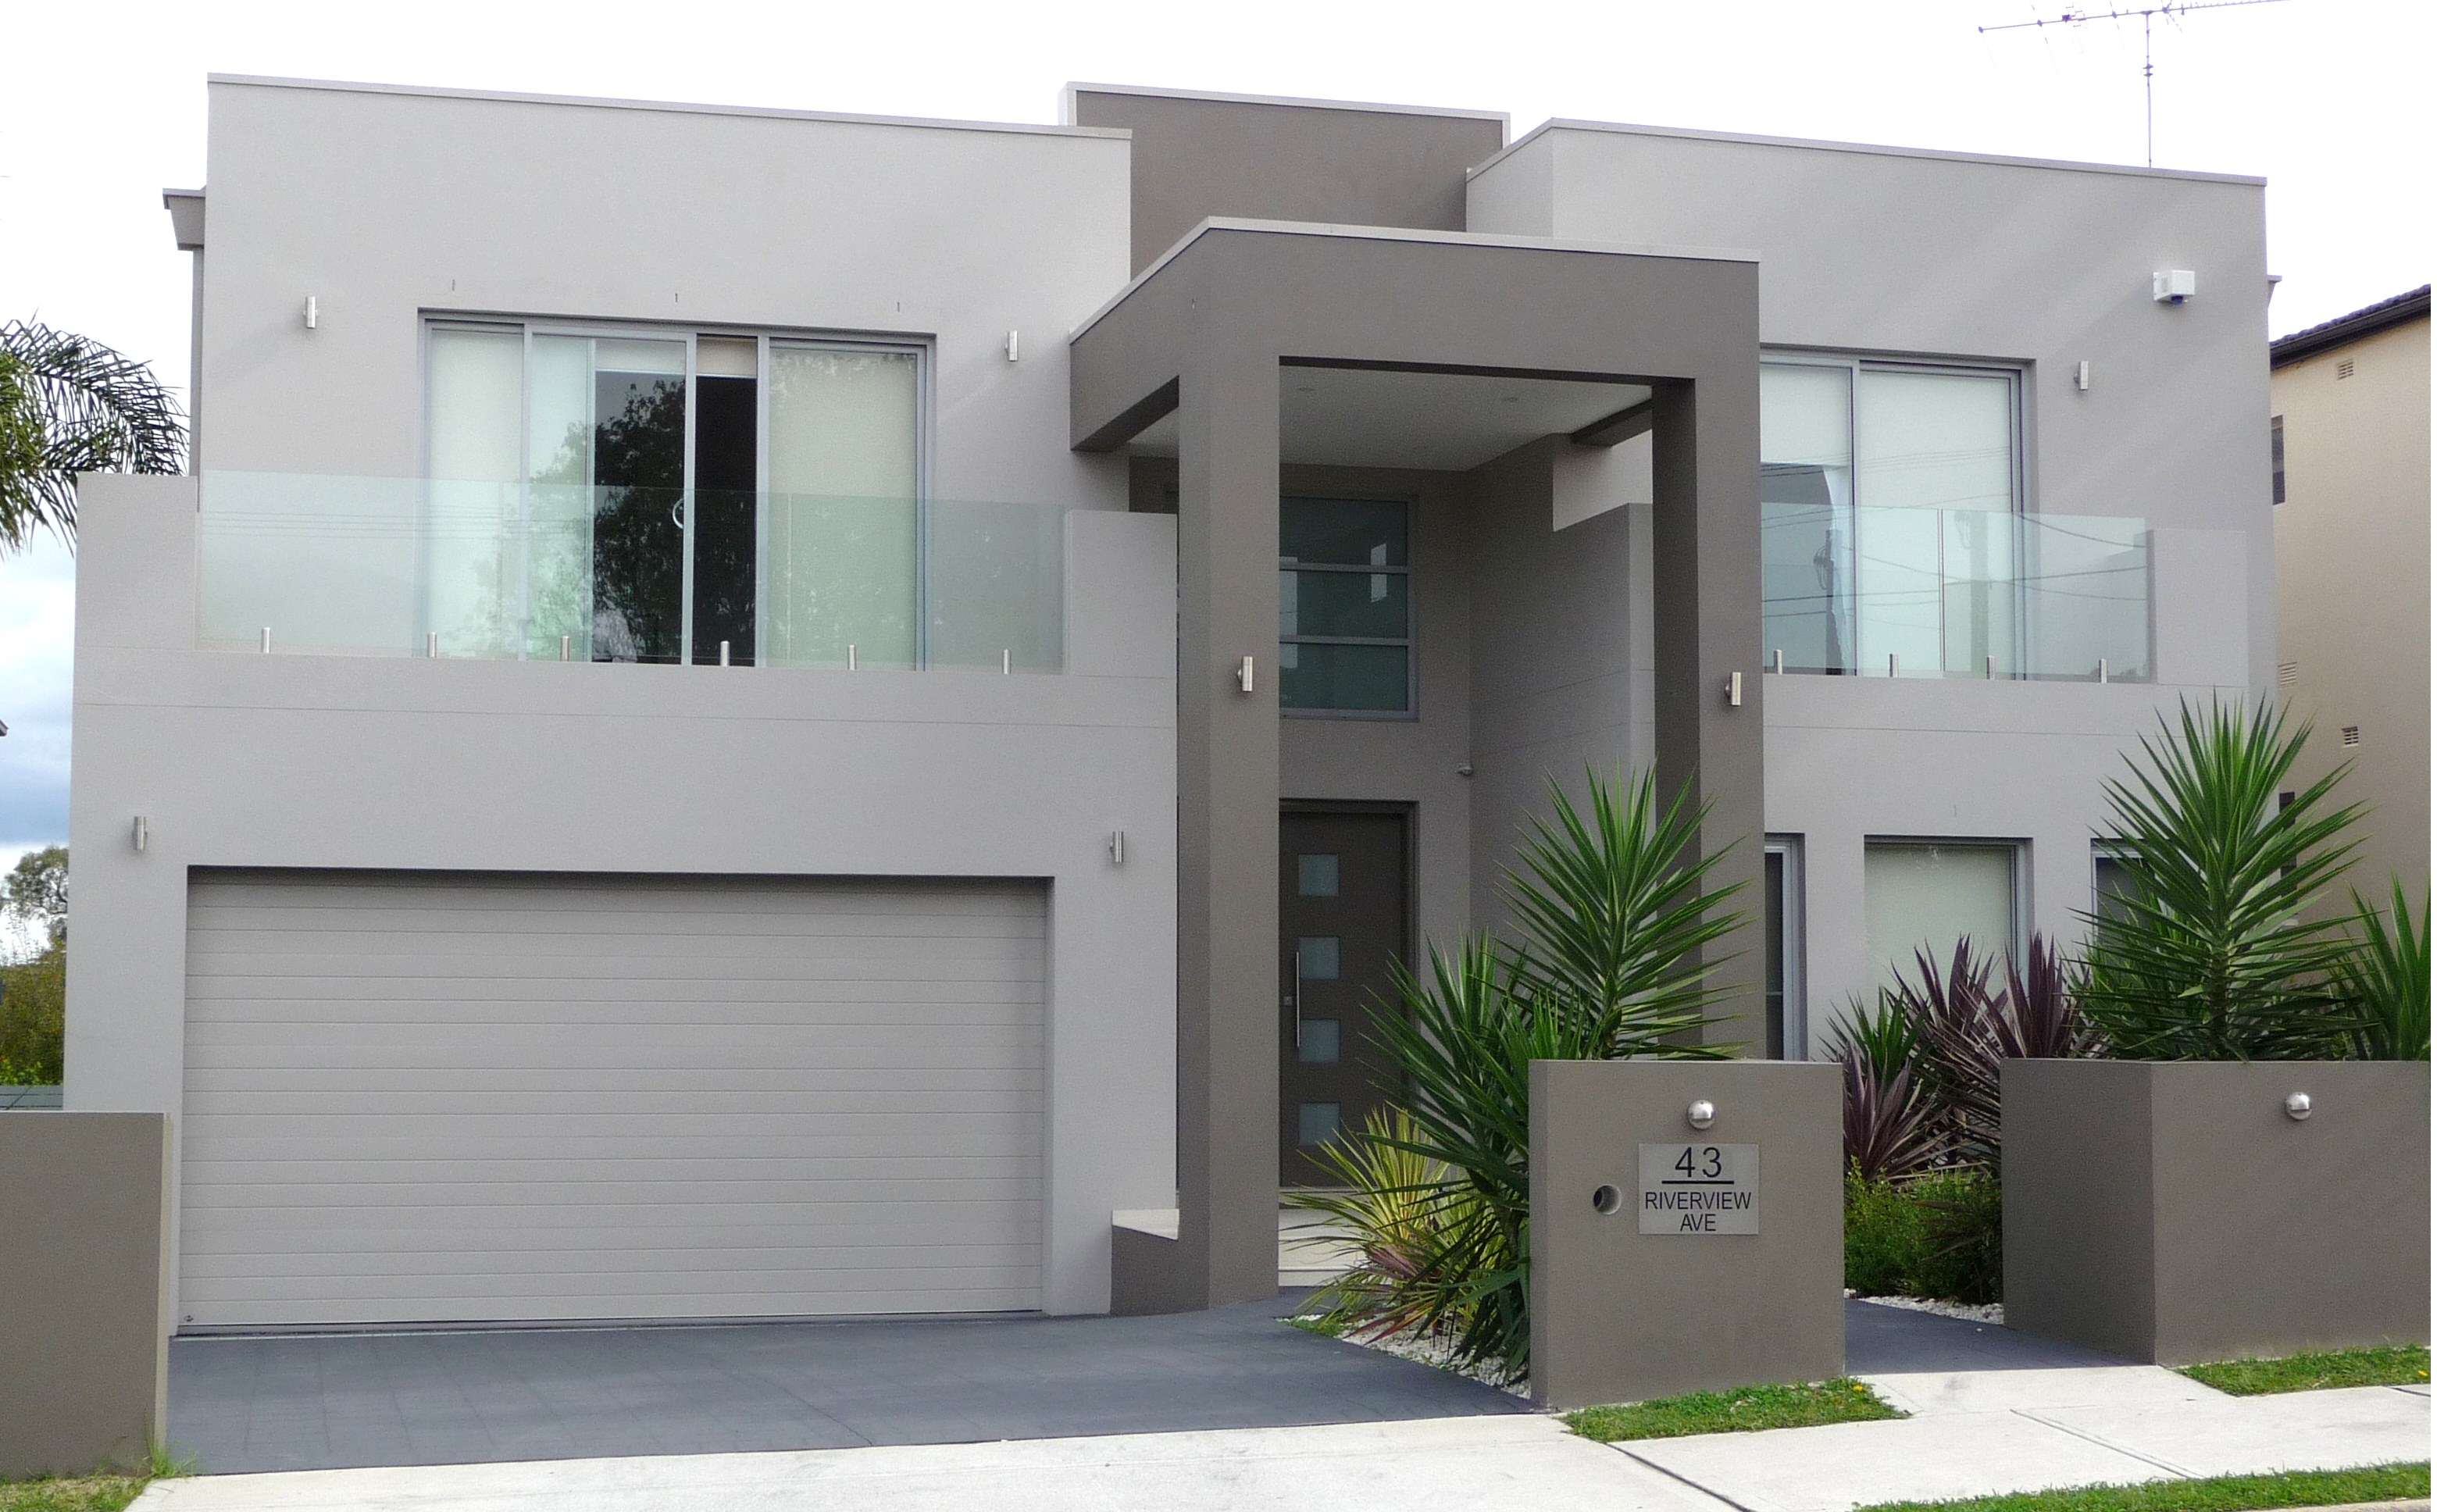 New Luxury Contemporary Home Kyle Bay NSW 2221 Kogarah Council